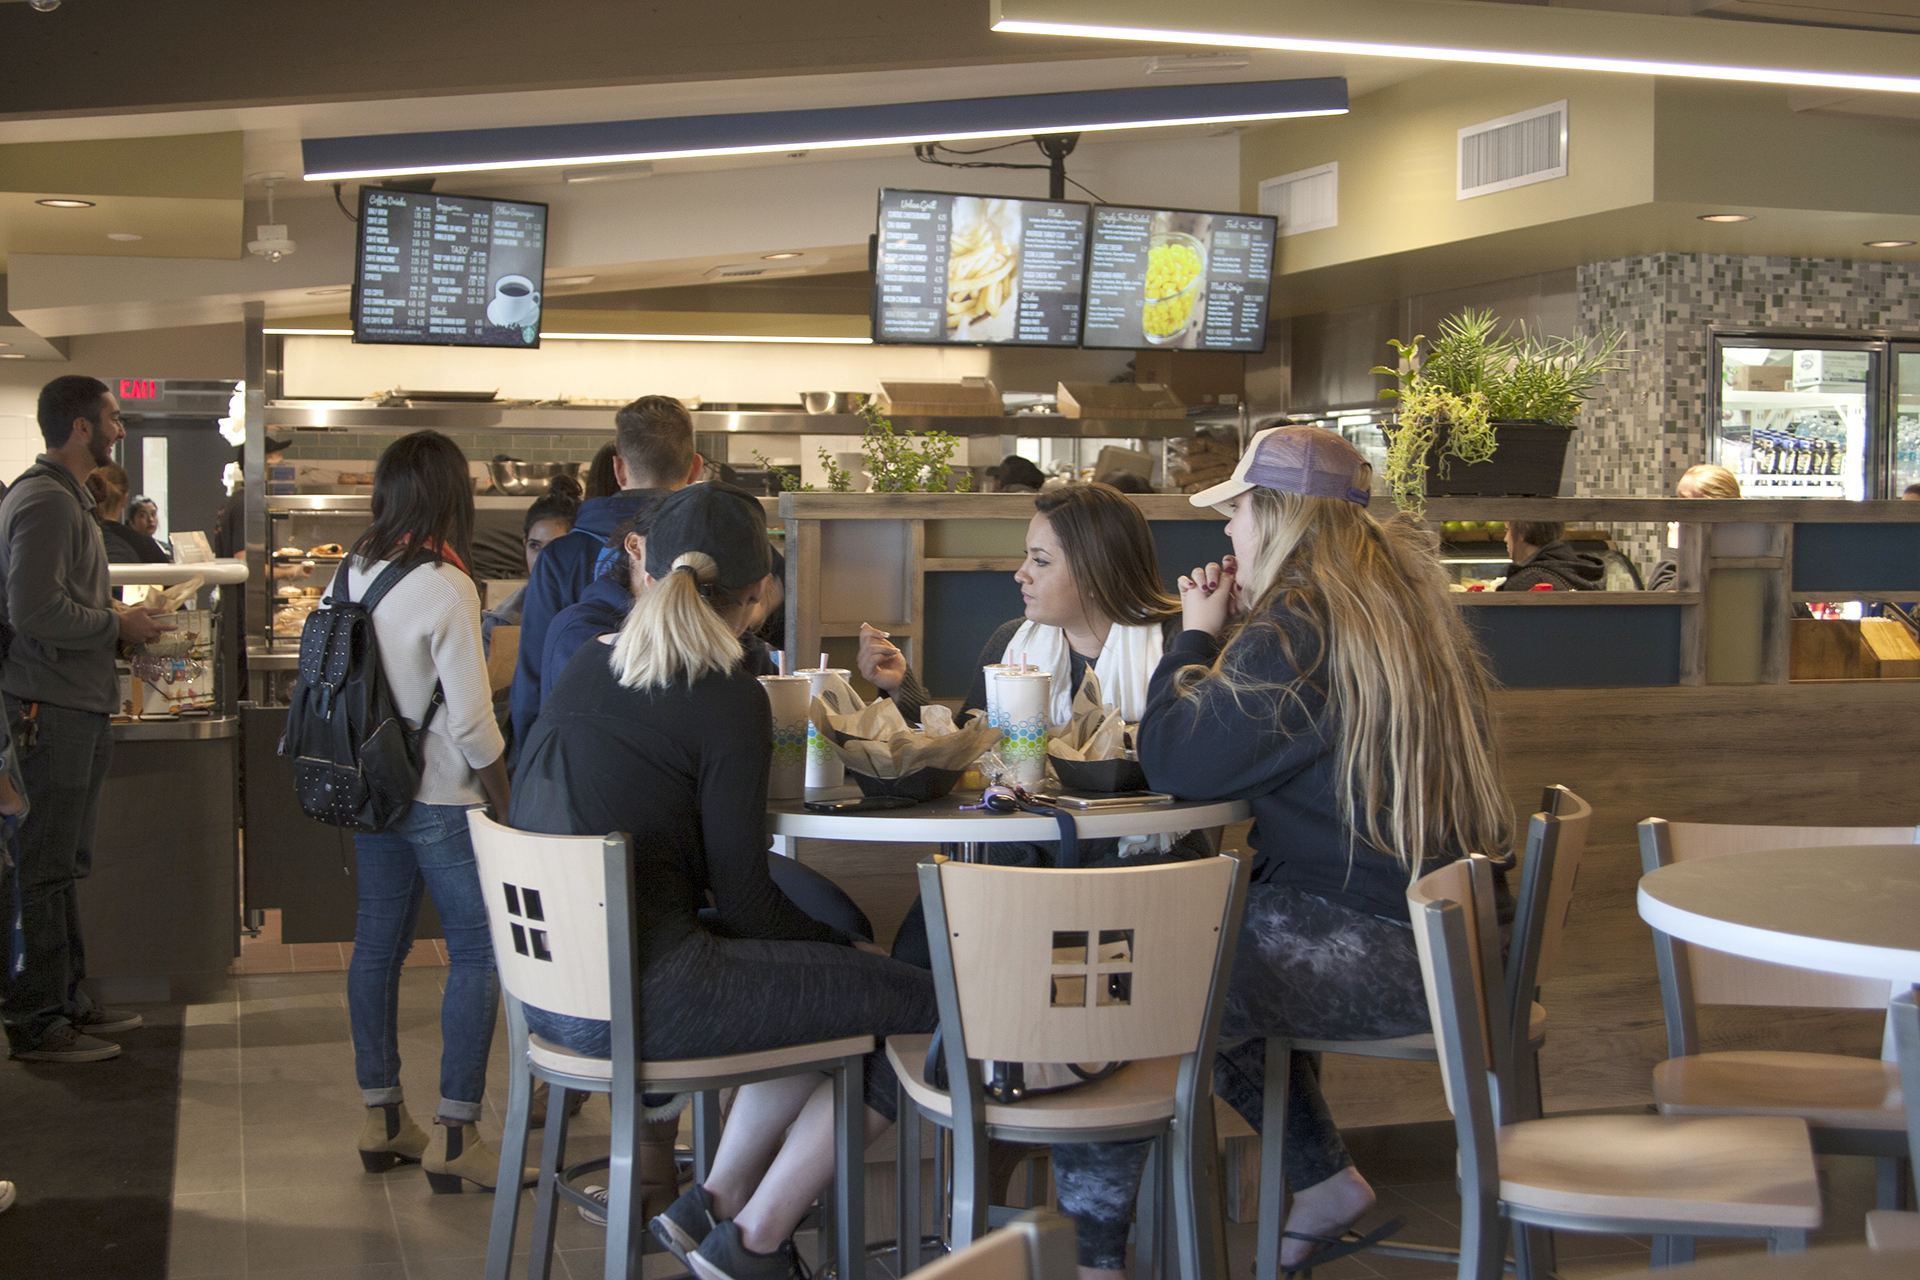 California Baptist University continues to add to its top-rated dining options, with the addition of Foodology, a modern, urban decor eatery that offers a variety of dishes.